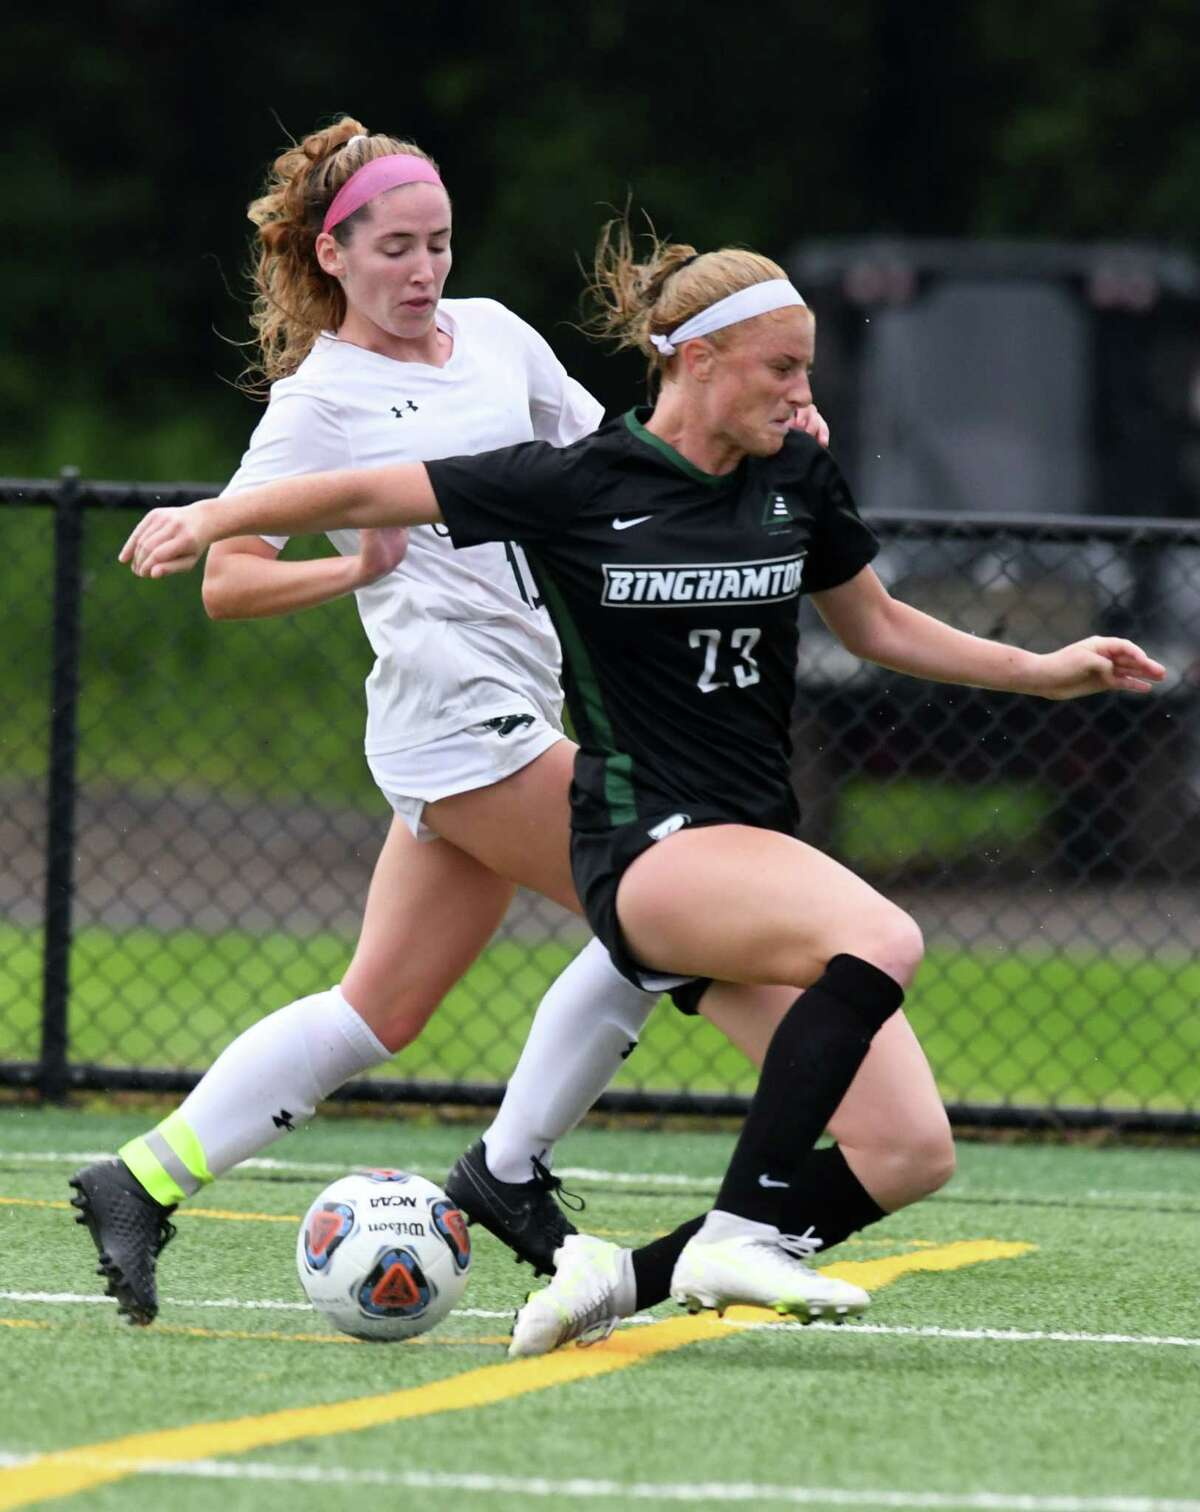 Siena College forward Carrie Krohn attacks down the left wing against Binghamton during the defending MAAC soccer champion?•s season opener on Thursday, Aug. 19, 2021, at Siena College in Colonie, N.Y.